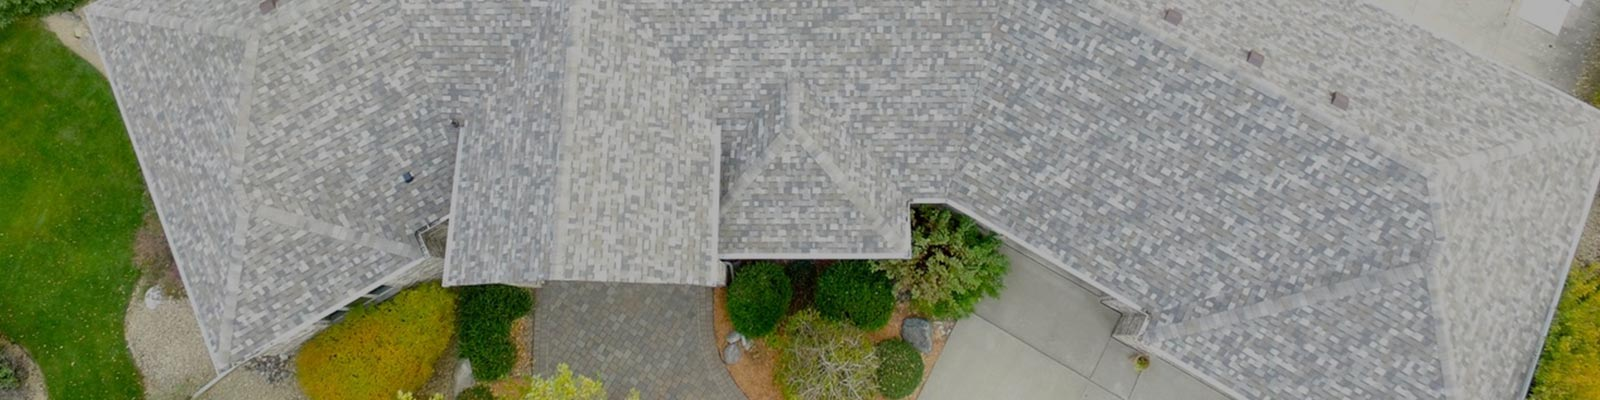 Gold Star Contracting serves Eden Prairie MN with Roof Replacement